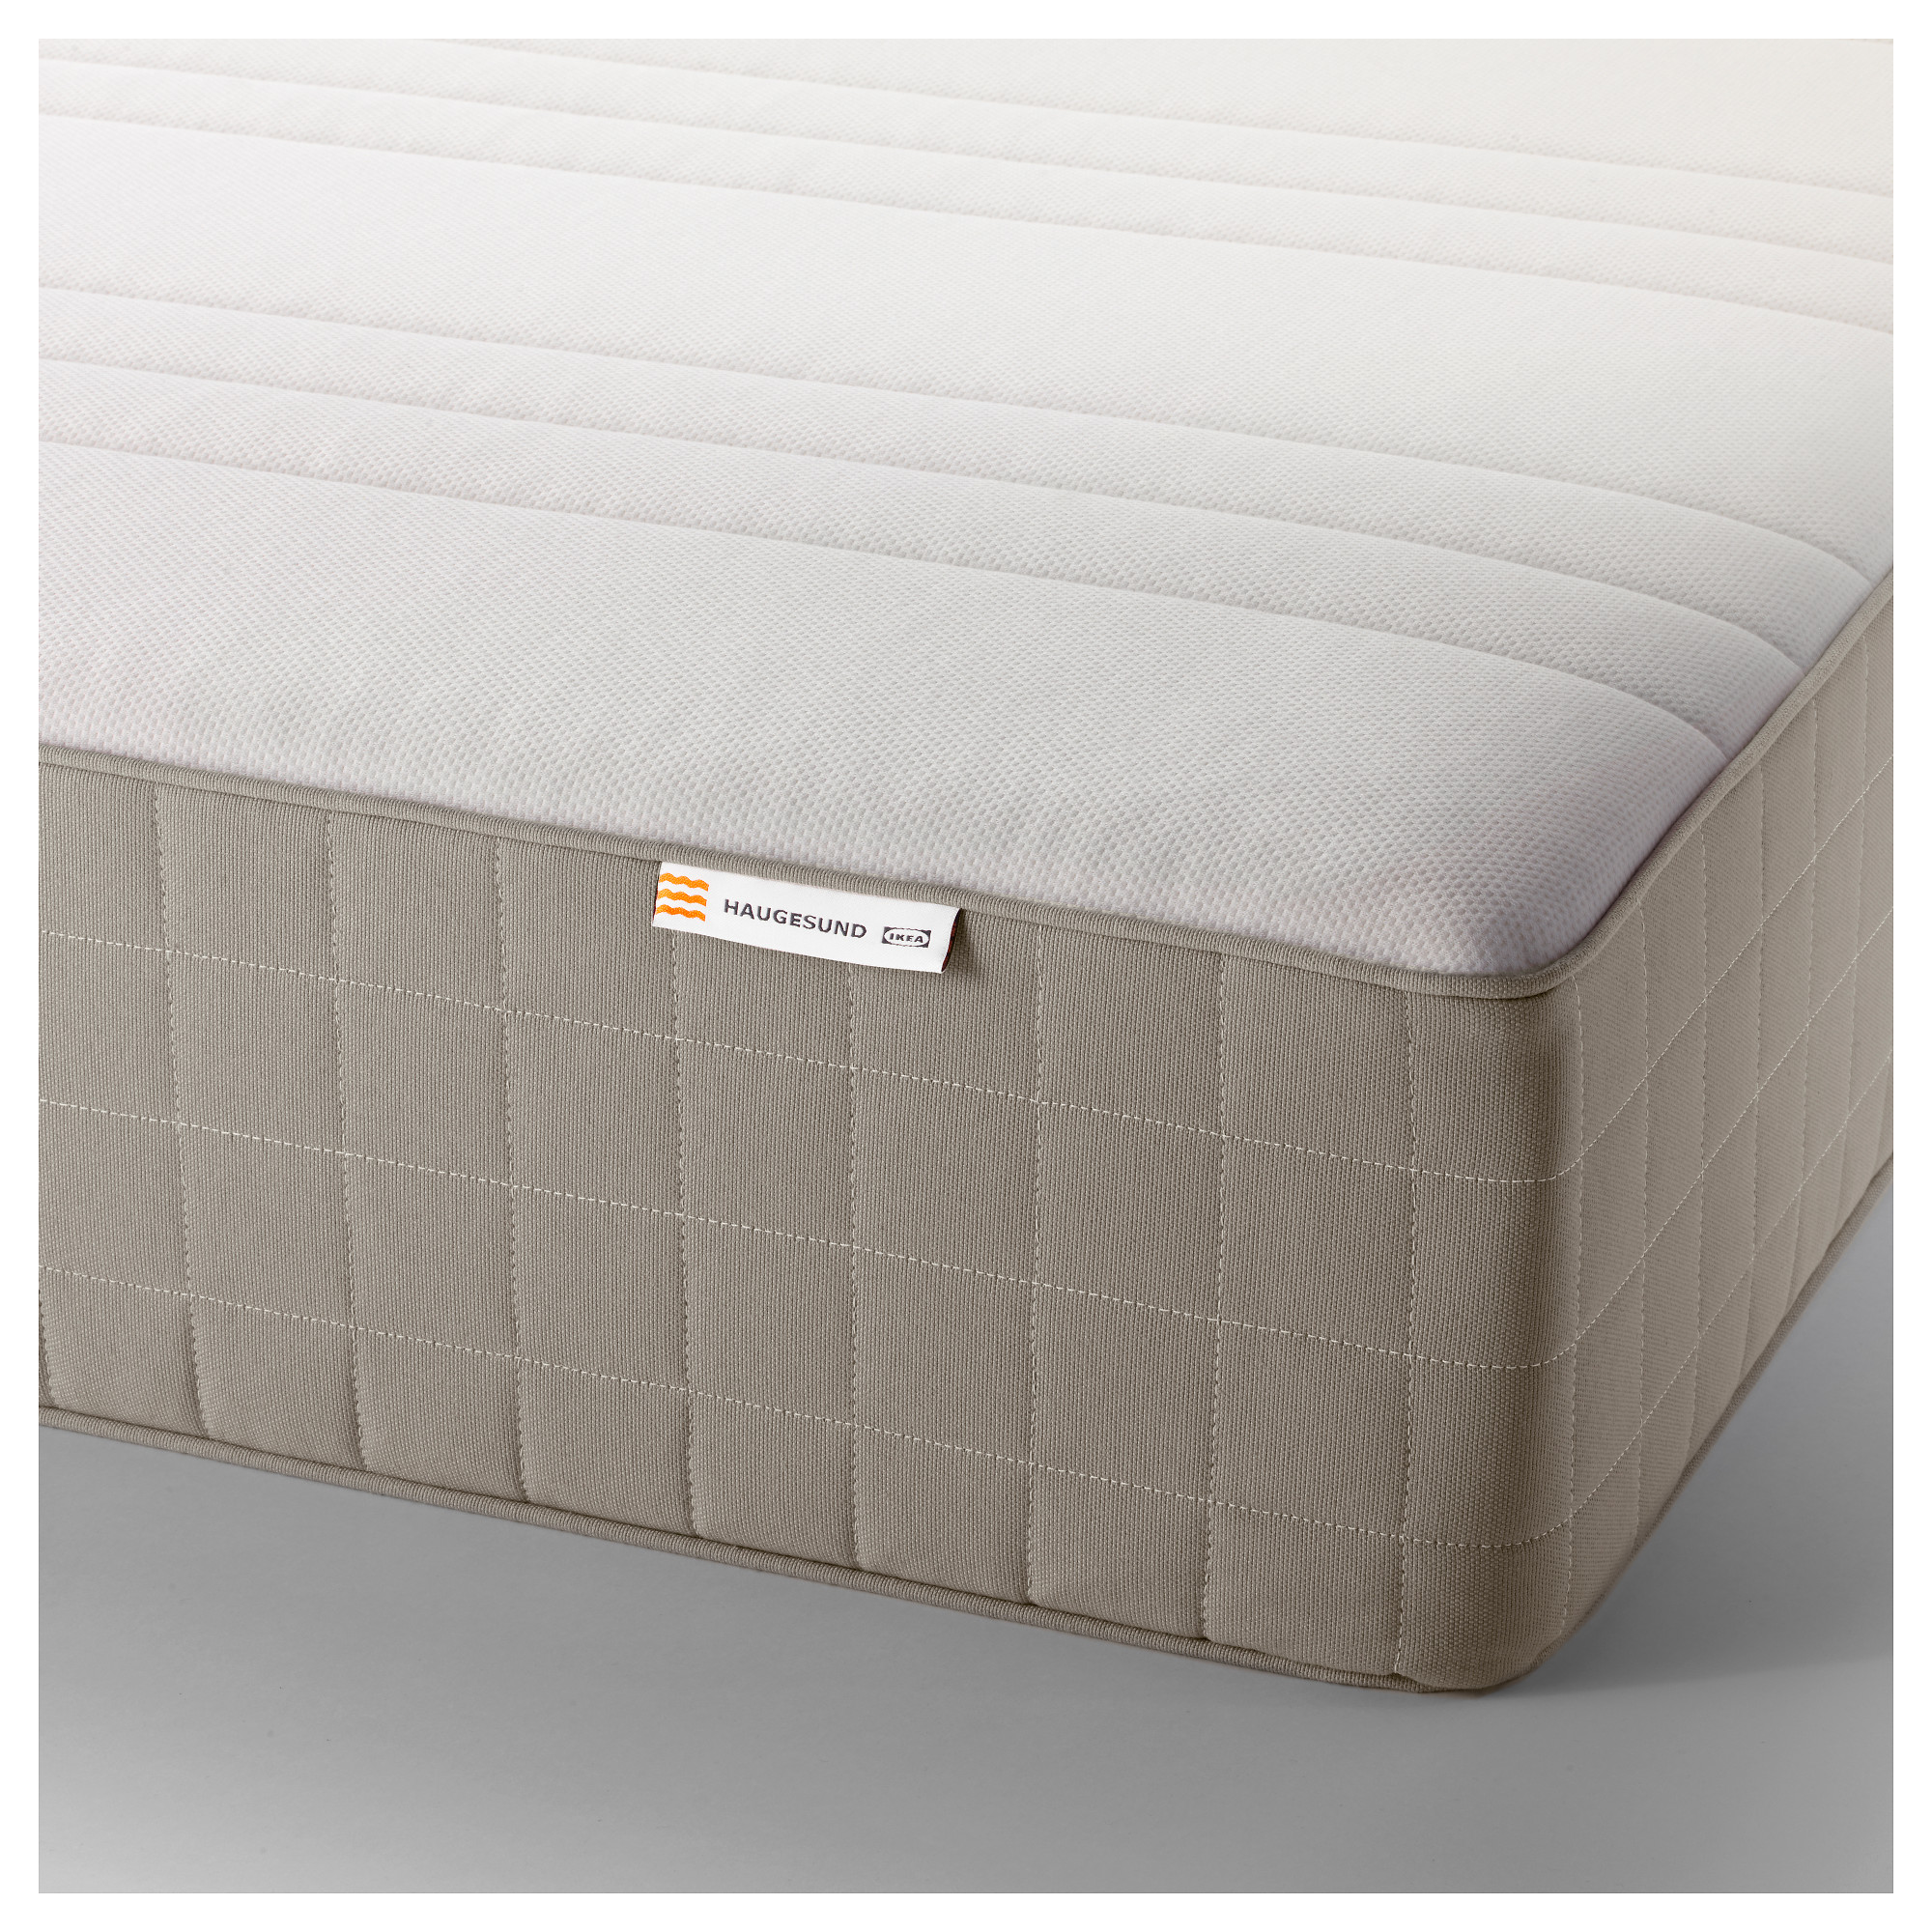 mattresses recommend ikea utah why sweet mattress i savings an love purchasing